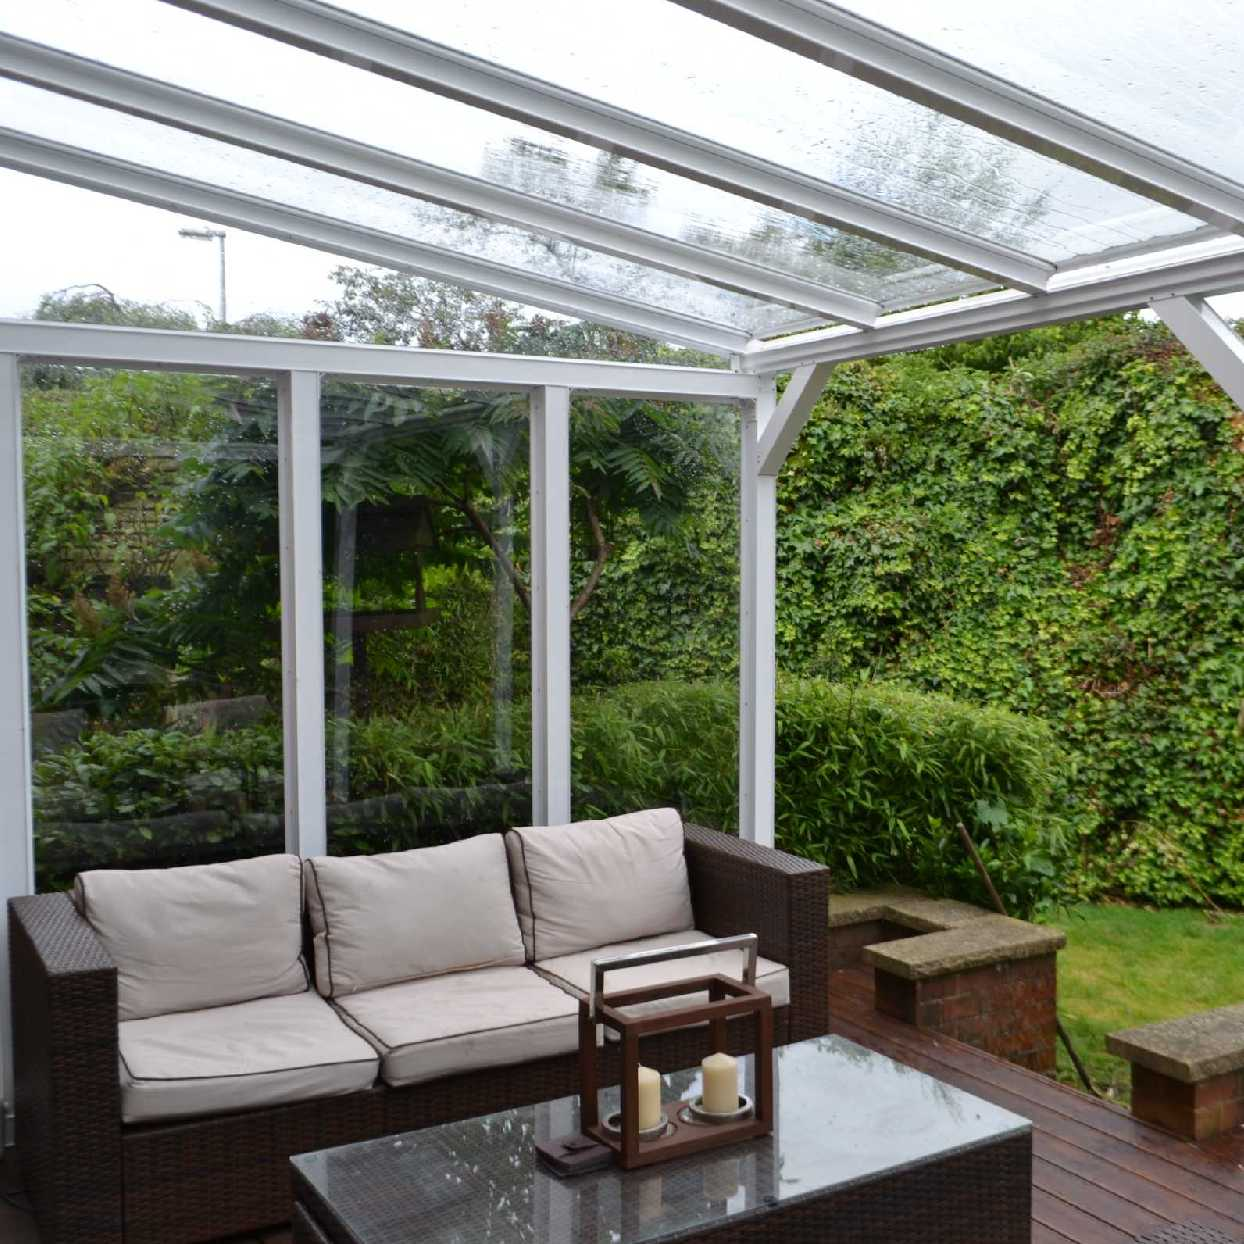 Omega Smart White Lean-To Canopy with 6mm Glass Clear Plate Polycarbonate Glazing - 6.3m (W) x 2.0m (P), (4) Supporting Posts